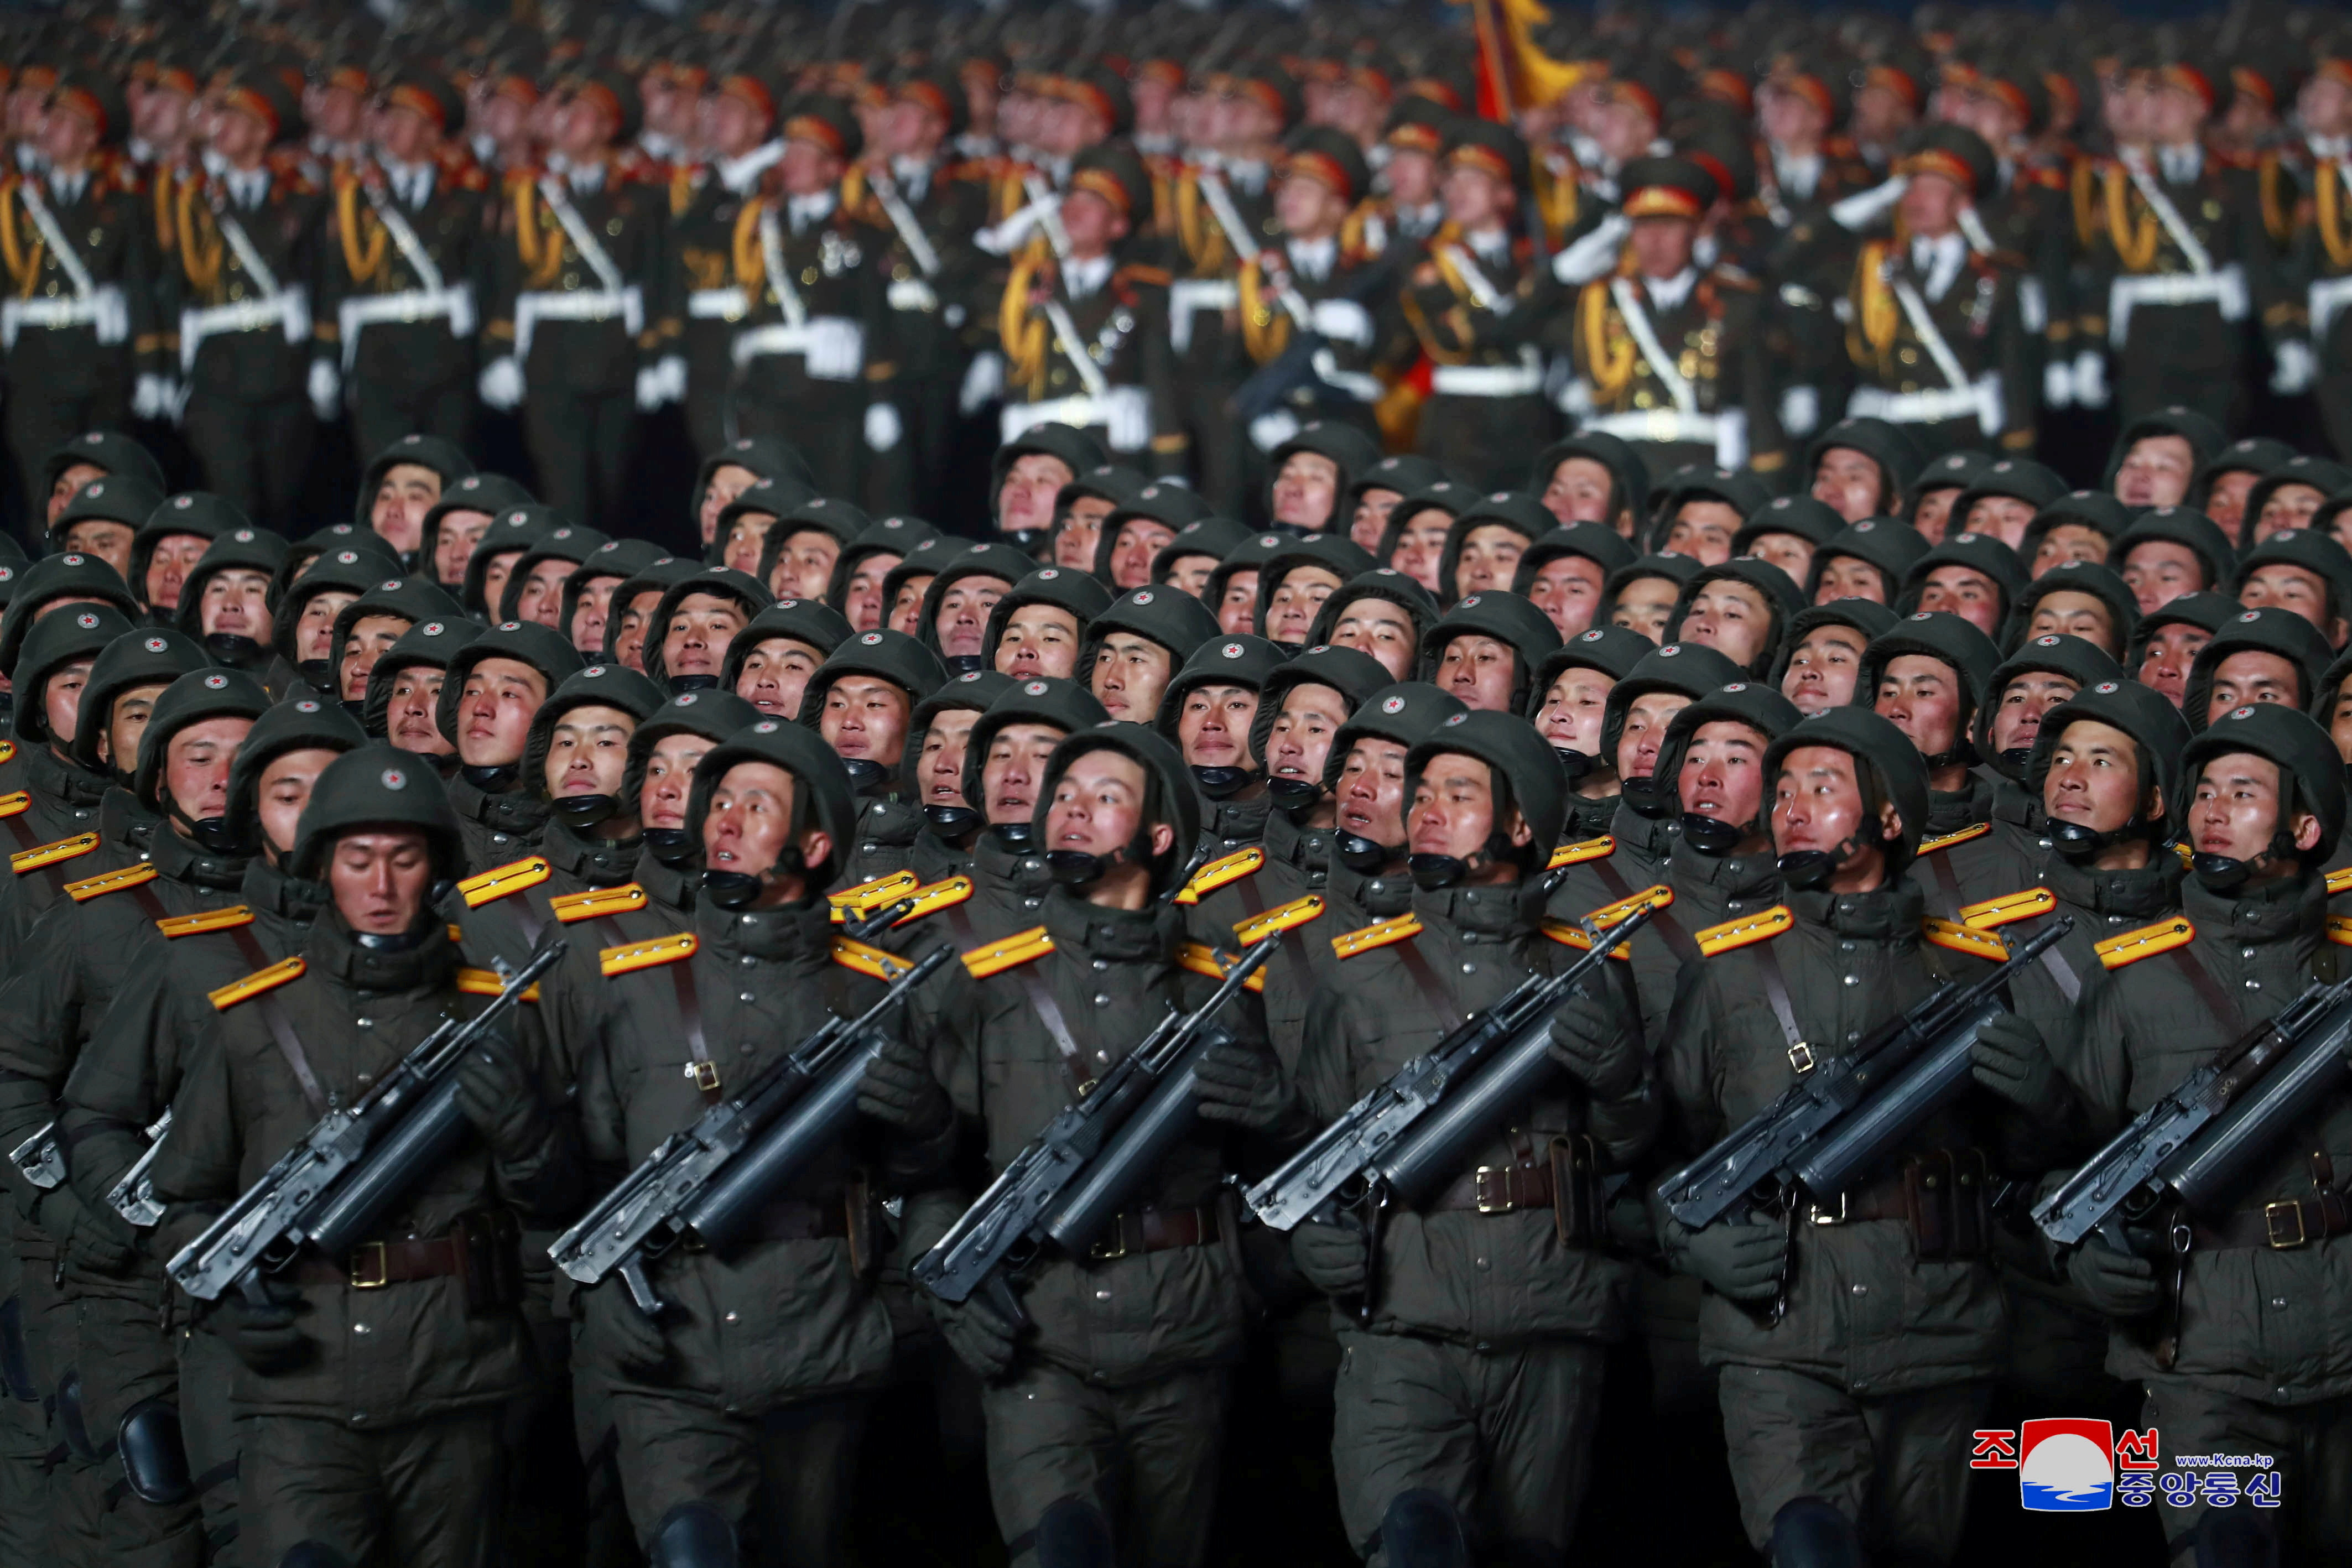 Troops march during a military parade to commemorate the 8th Congress of the Workers' Party in Pyongyang, North Korea January 14, 2021 in this photo supplied by North Korea's Central News Agency (KCNA).    KCNA via REUTERS